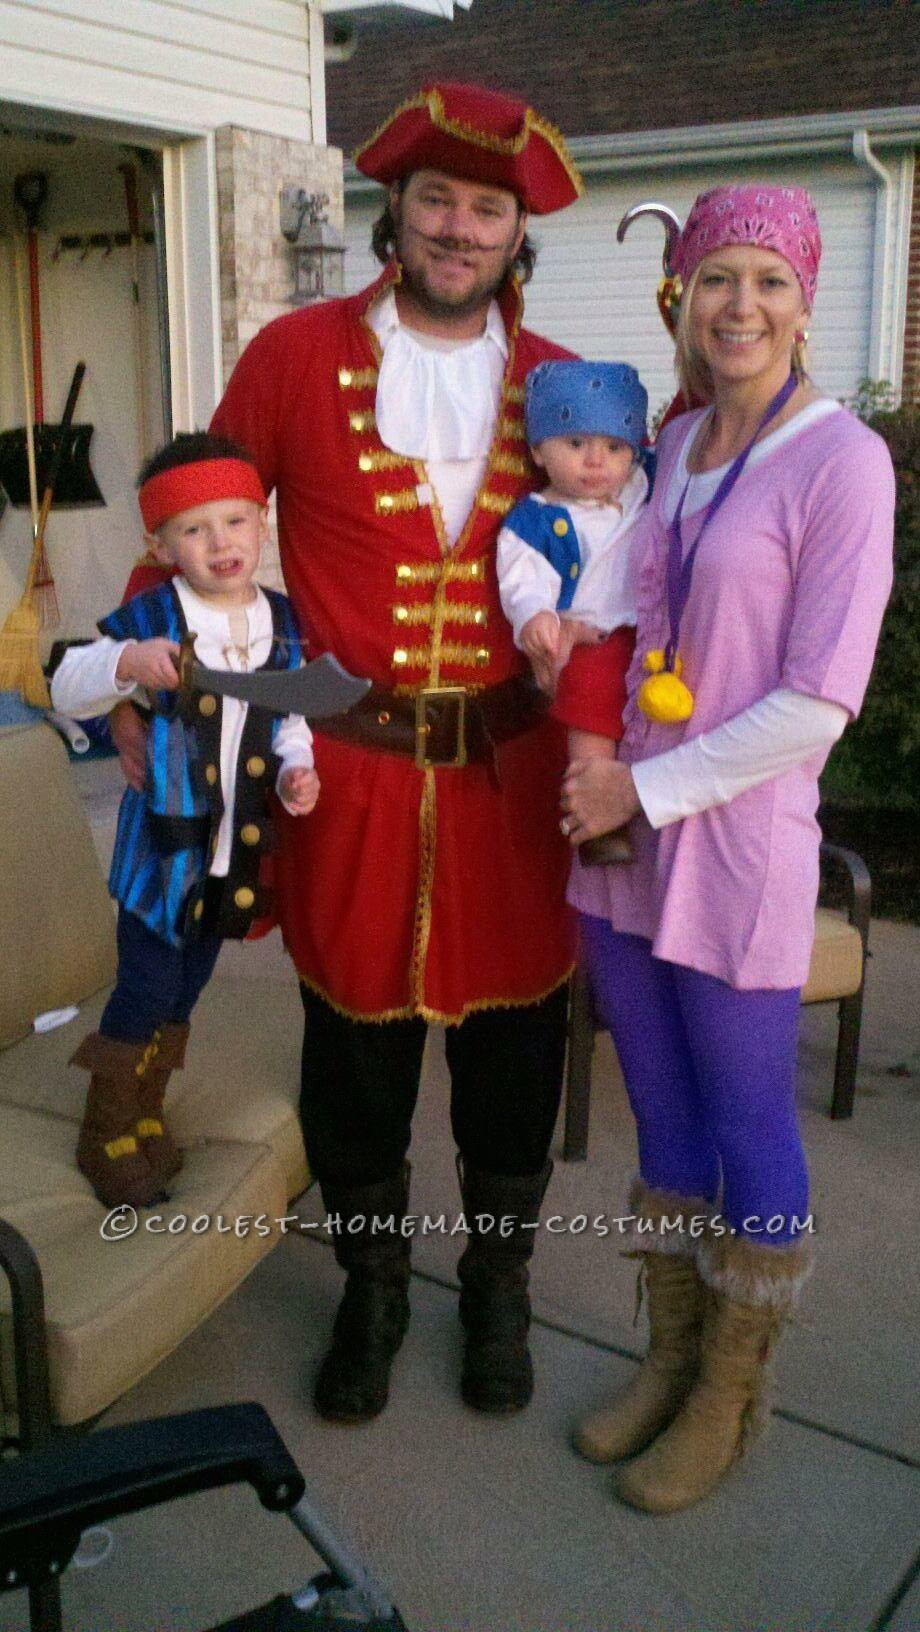 Every year, we decide as a family what our Halloween costume will be.  Always homemade.  Last year, we went with Disney\'s Jake & the